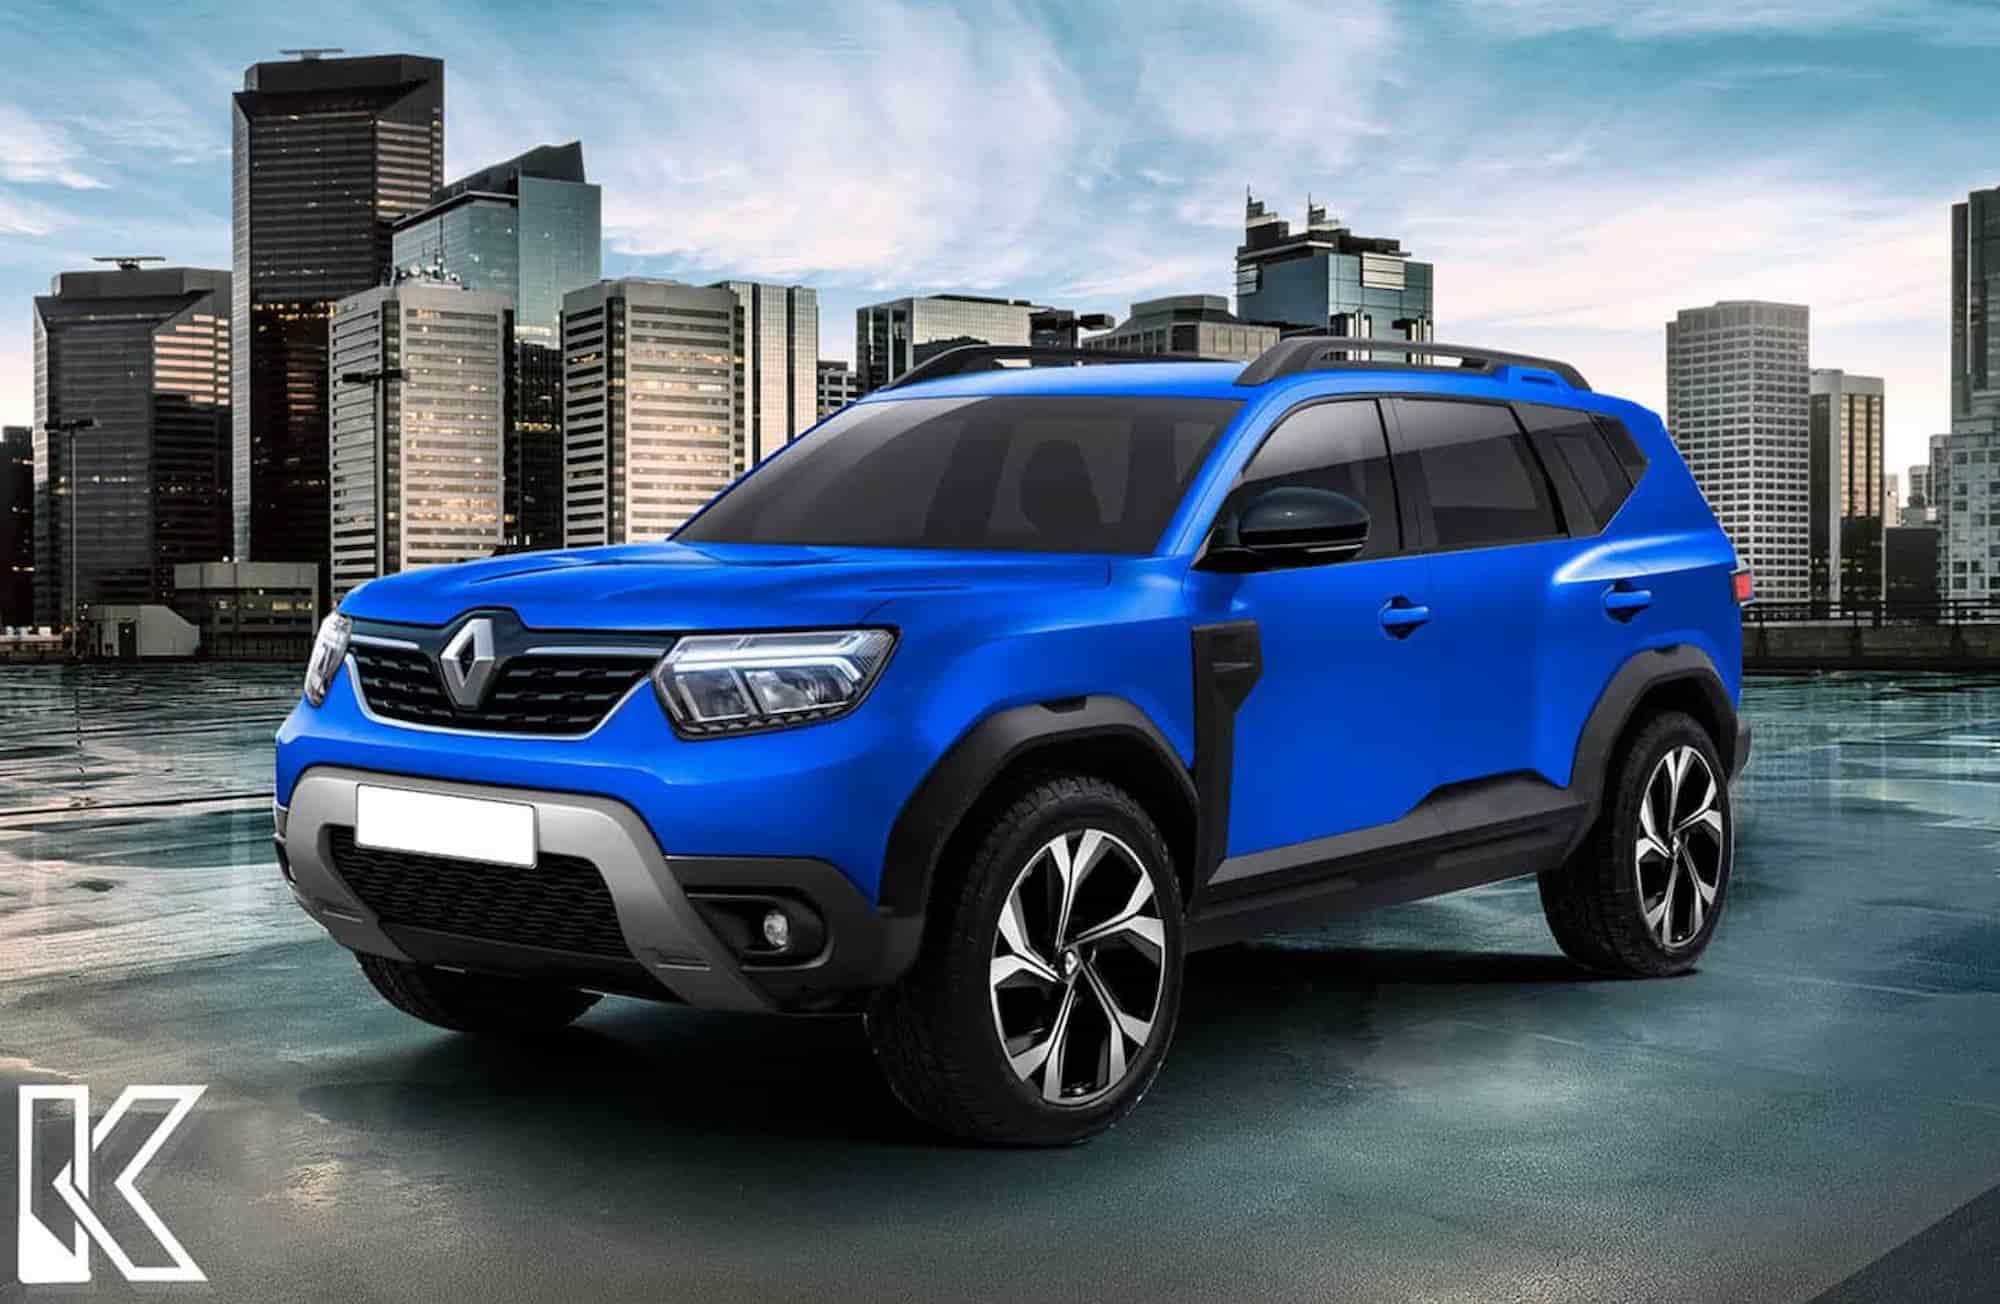 Dacia Bigster Renault Duster 7 seater rendering front